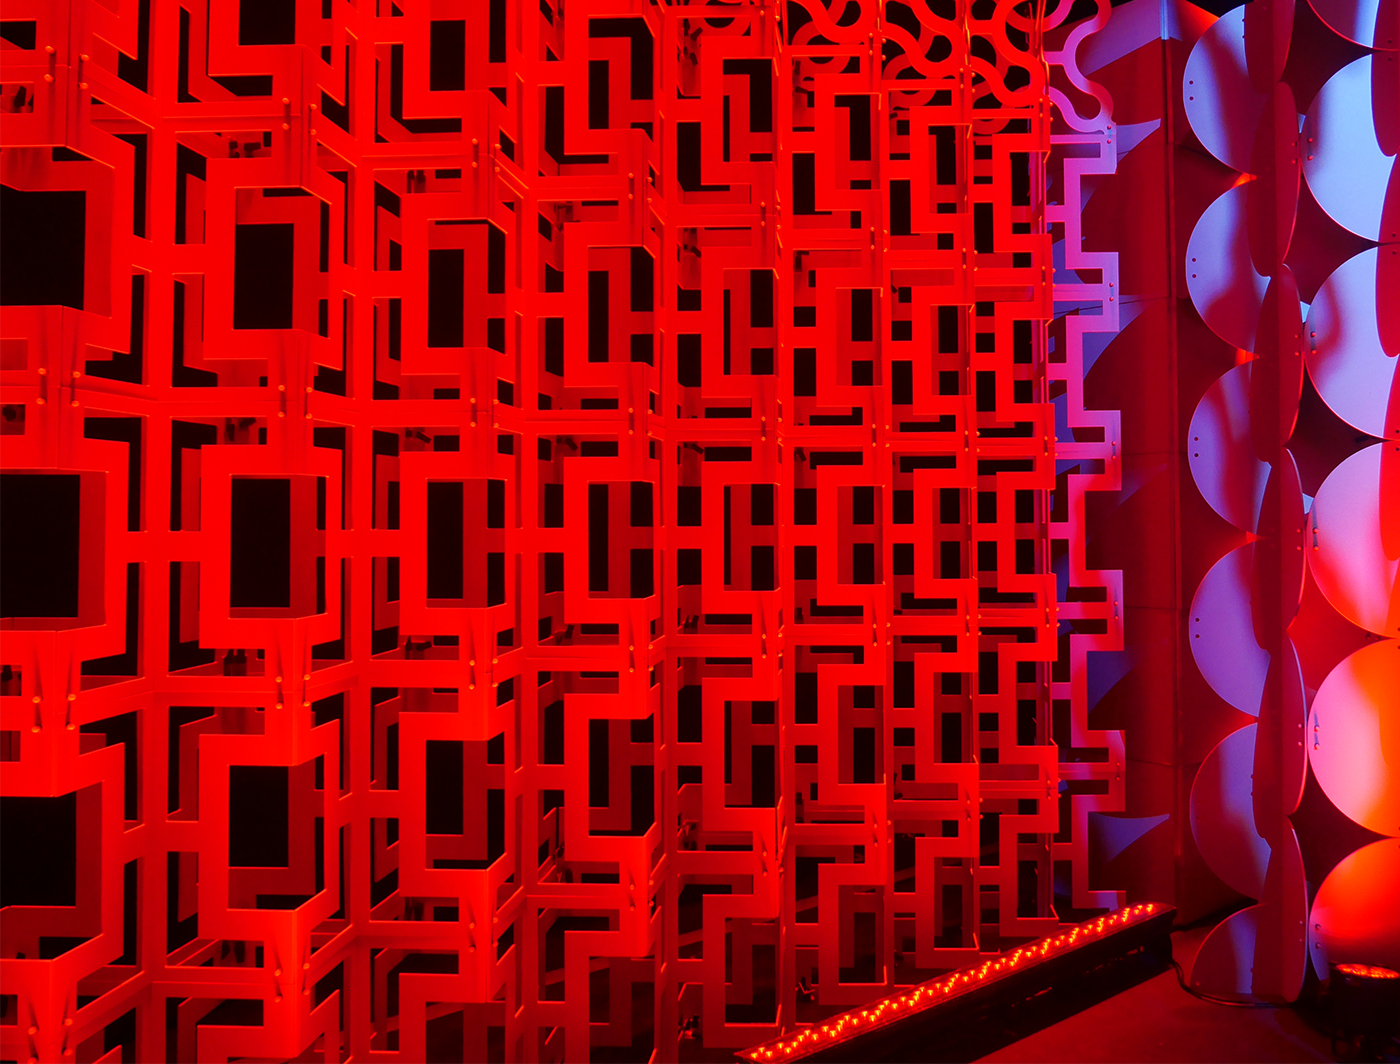 Arcade FASTwall panels add pizzazz to this space